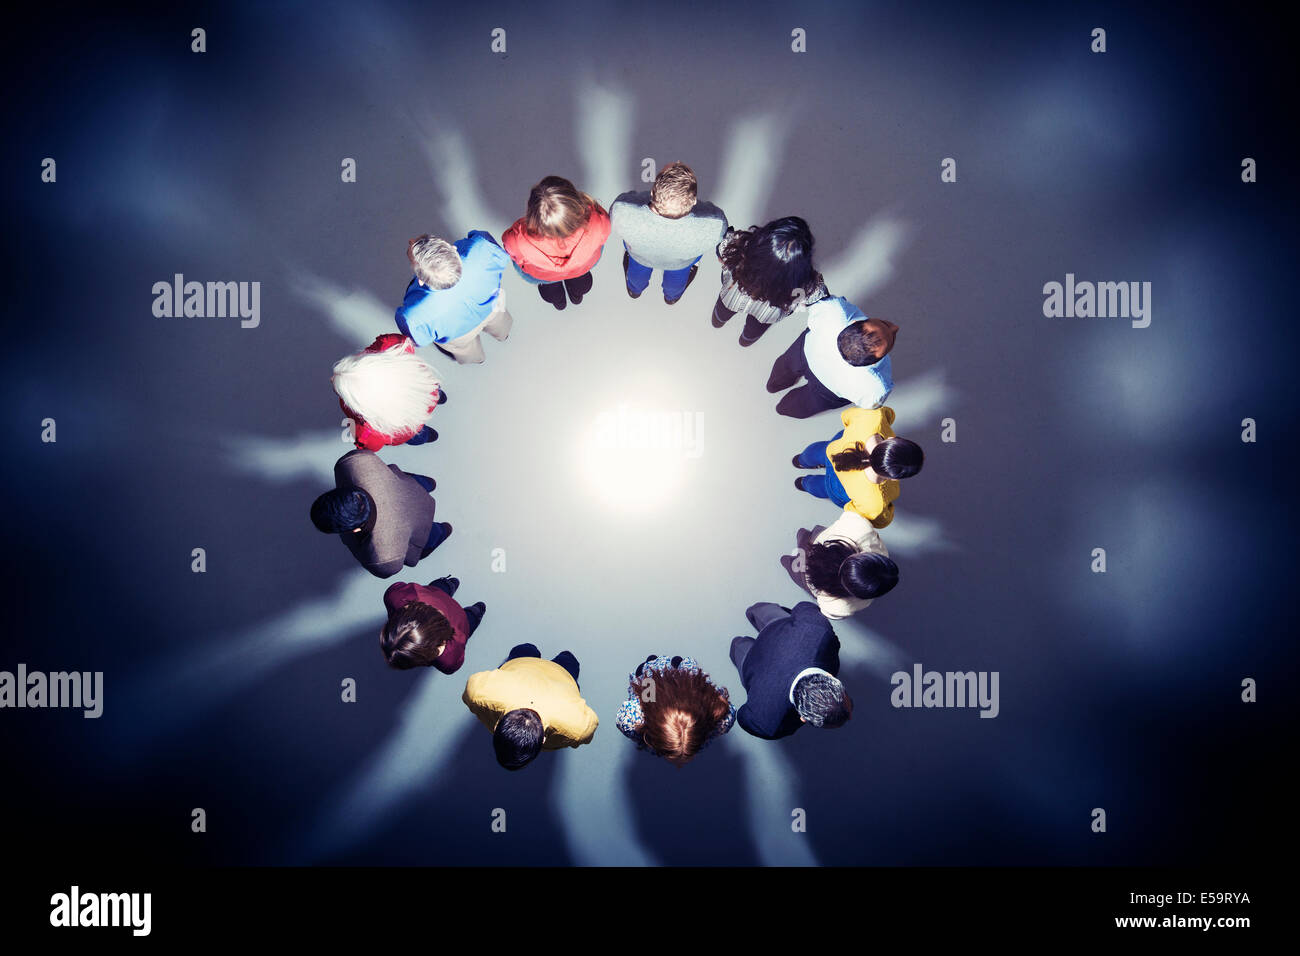 Business people with backs to bright light - Stock Image